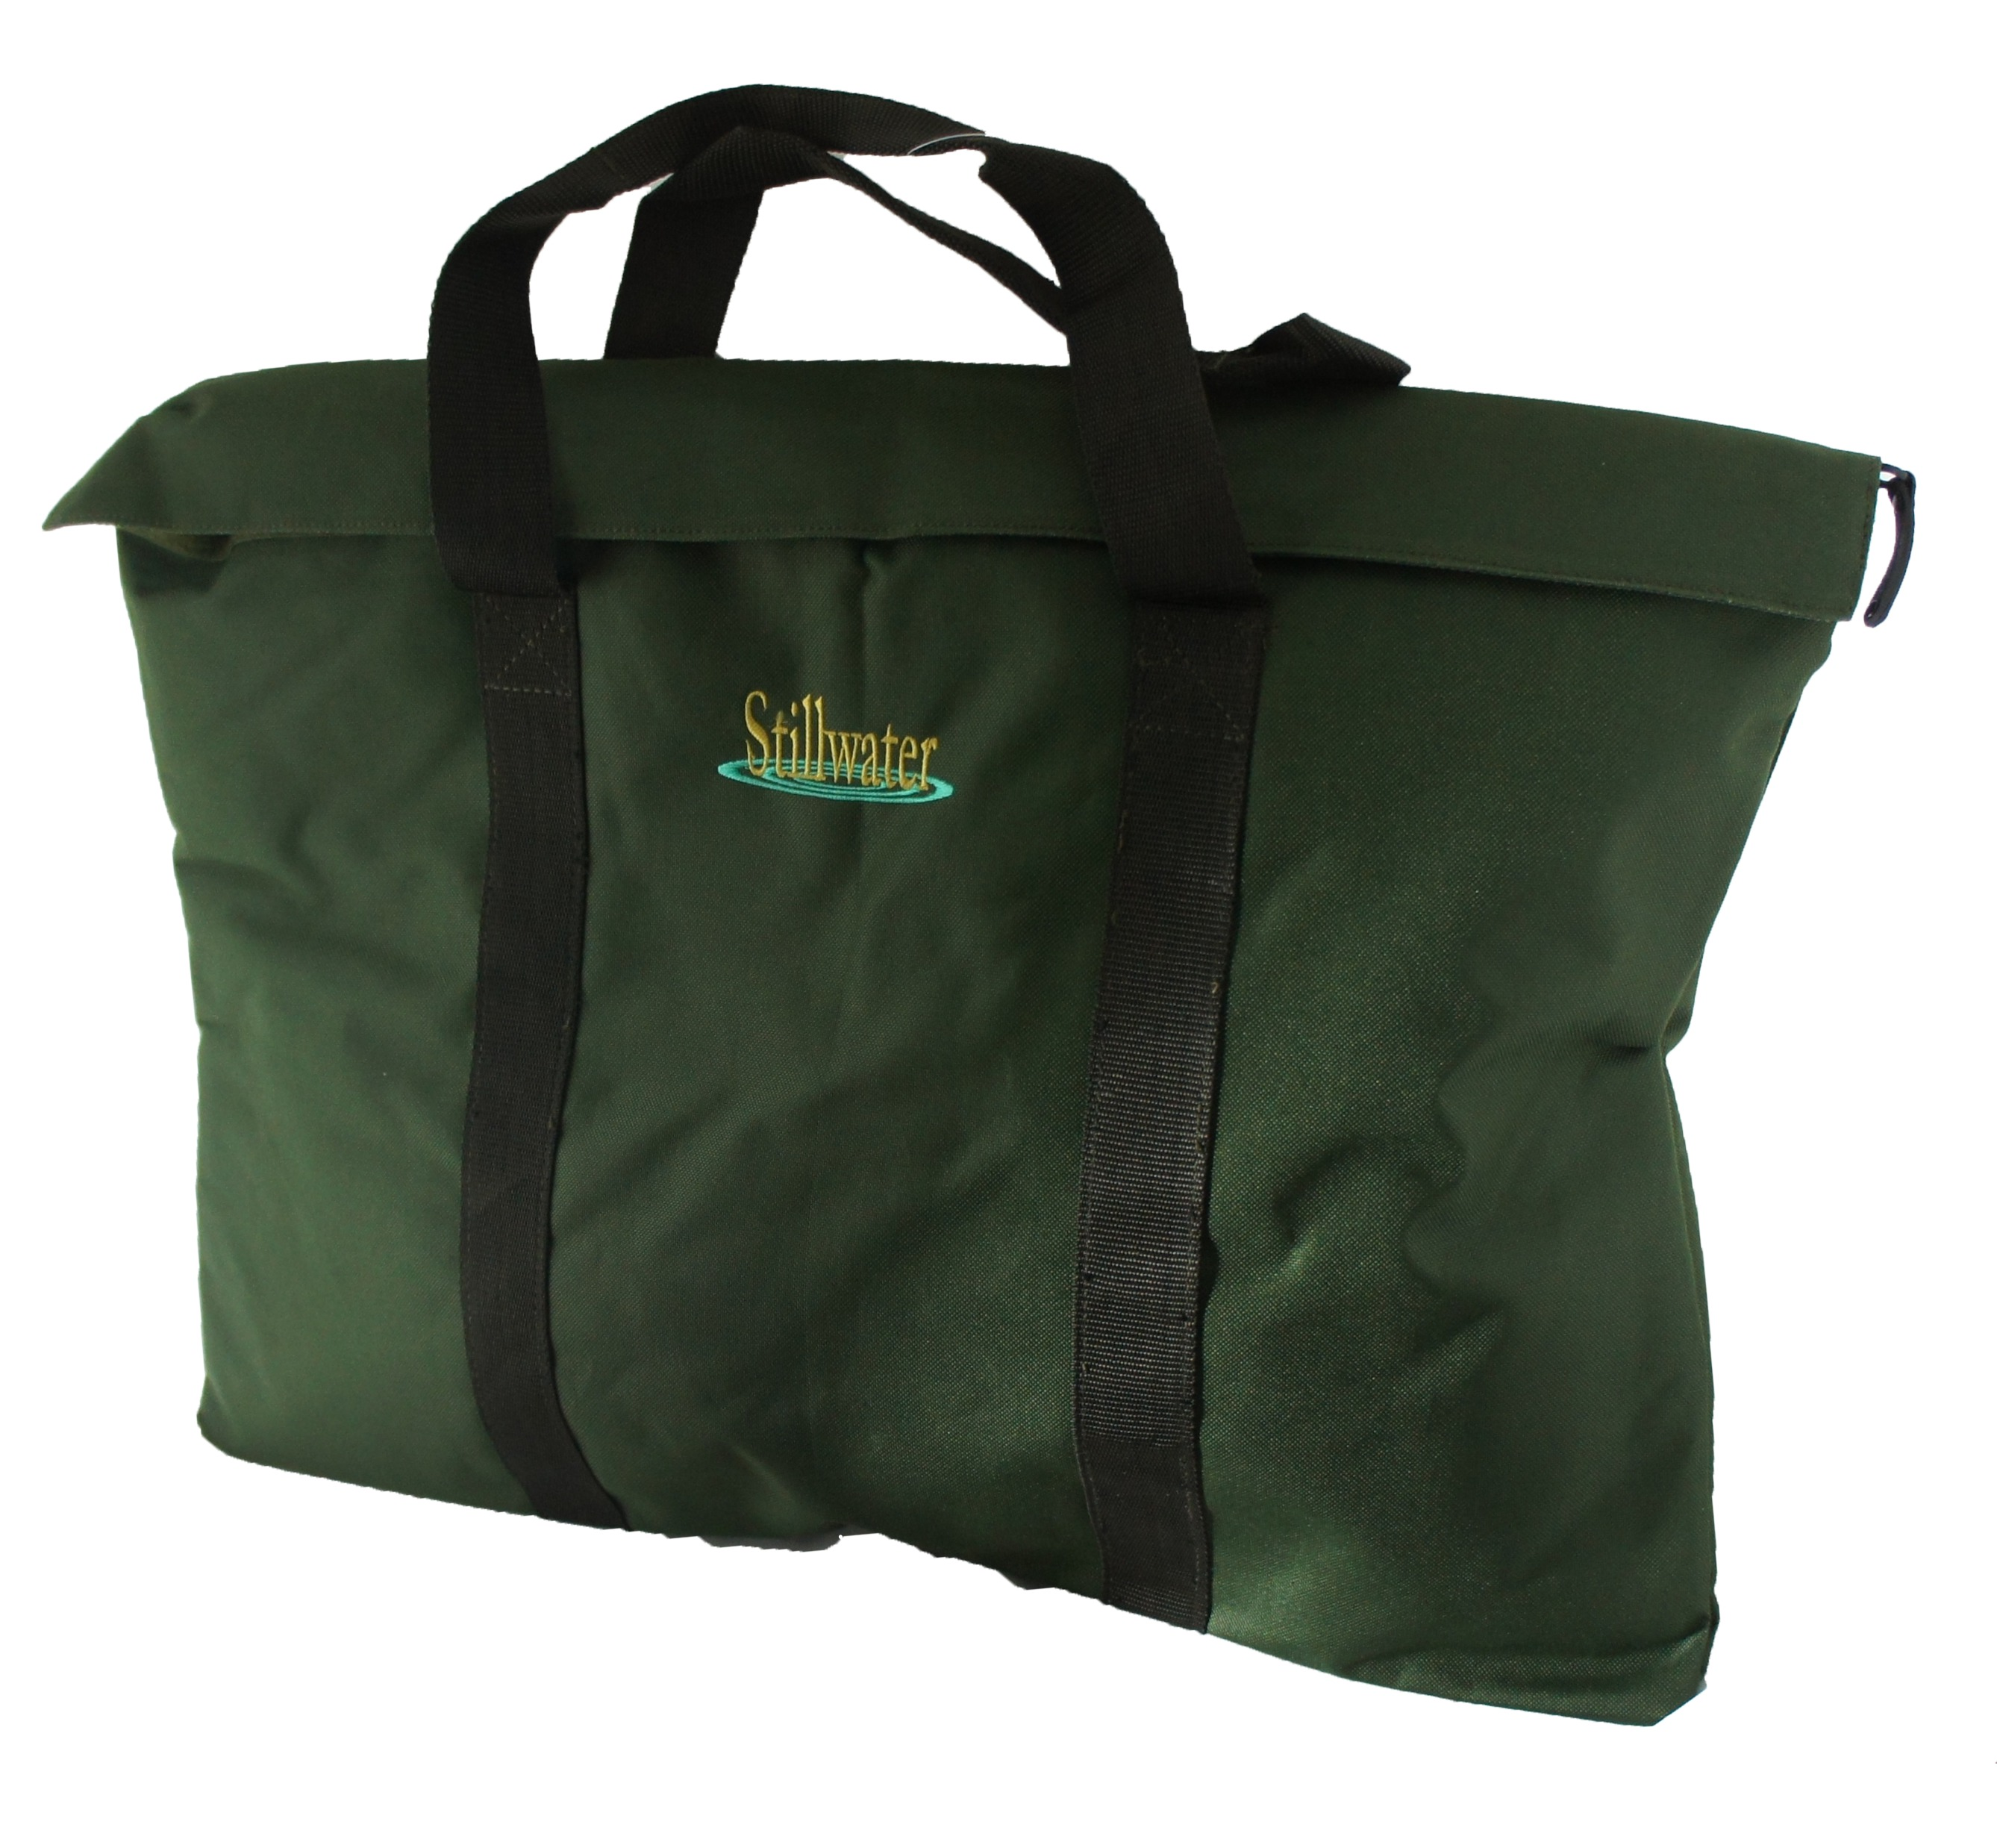 Stillwater Trout Cool Bag – Glasgow Angling Centre